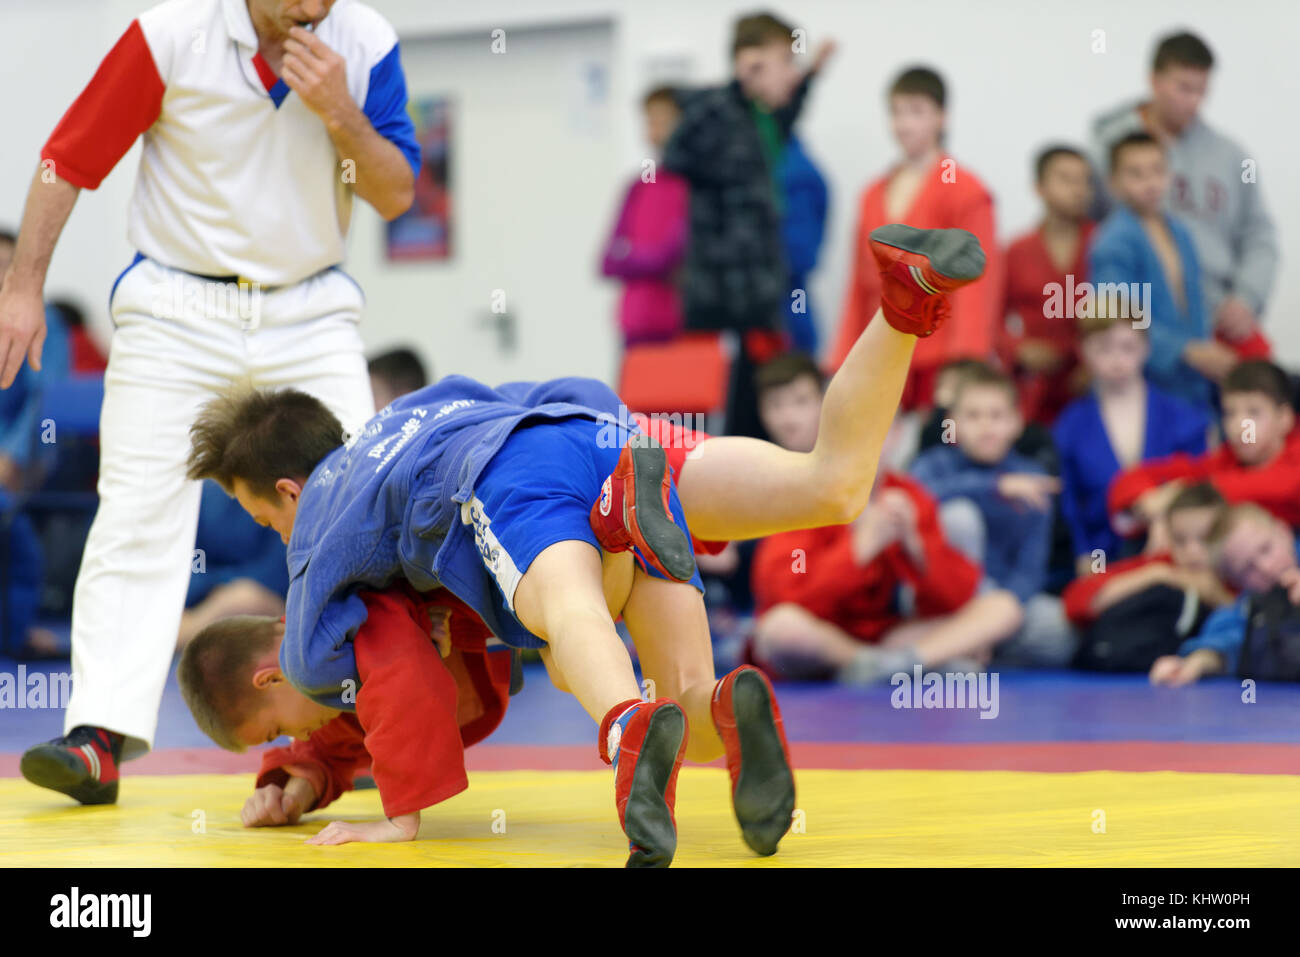 St. Petersburg, Russia - November 19, 2017: Young athletes competes in sambo wrestling during the All-Russian Sambo - Stock Image